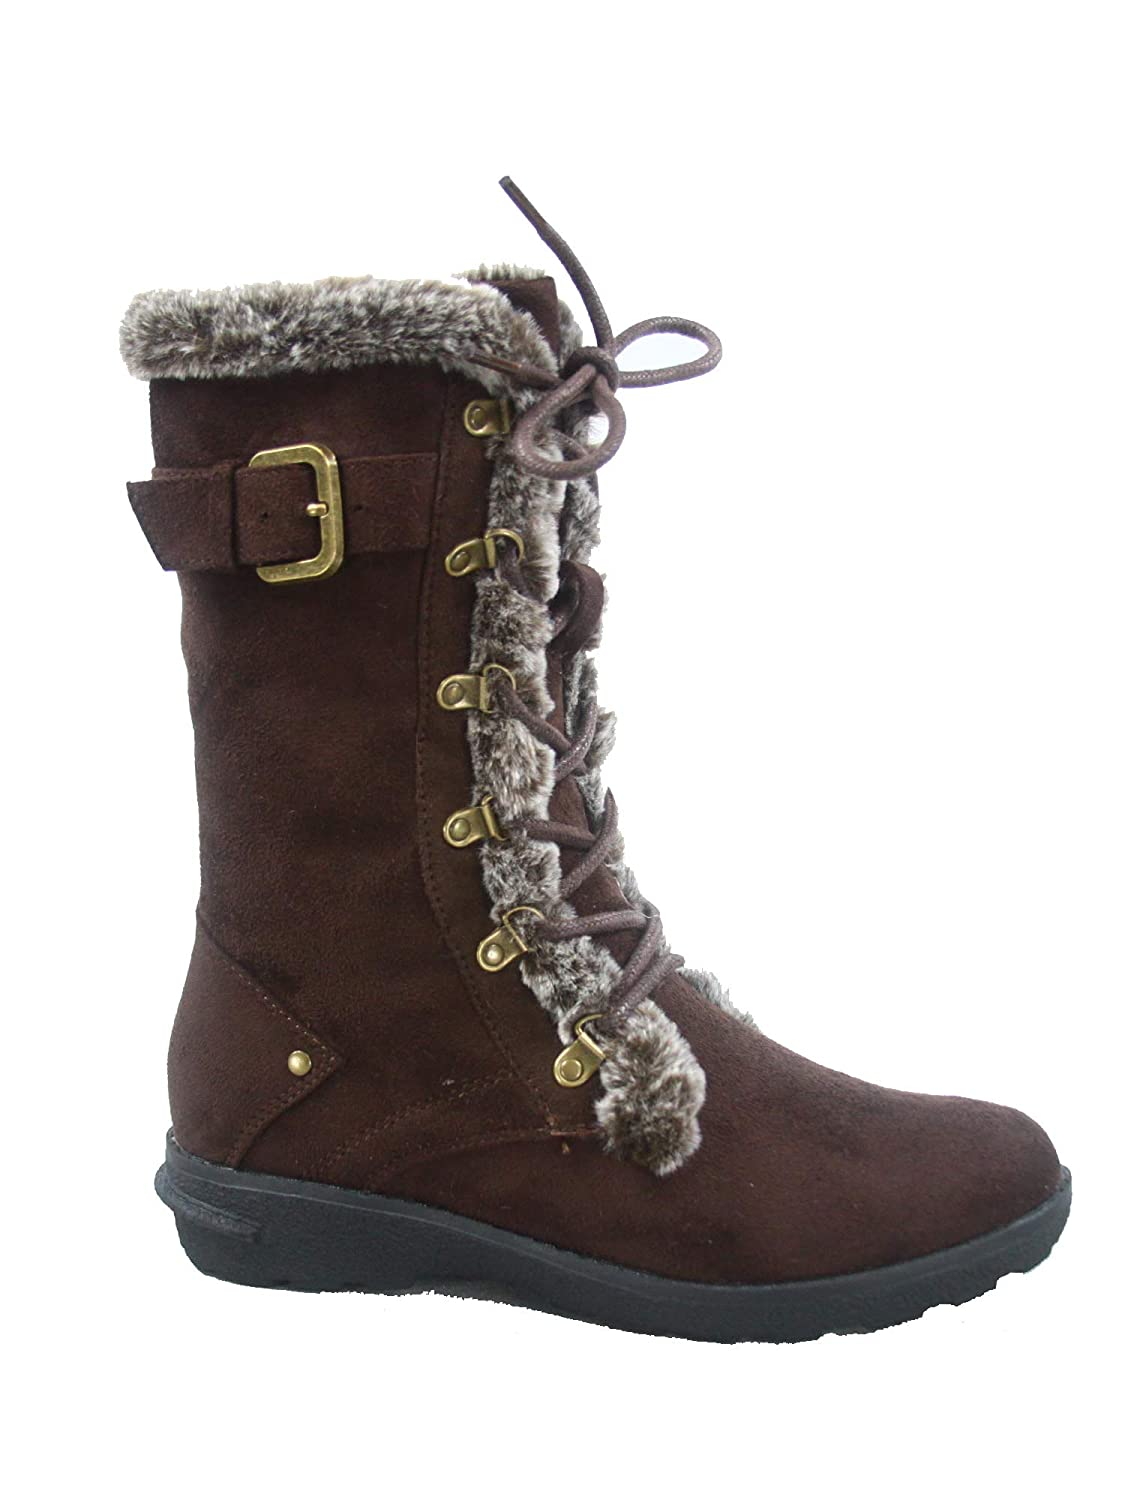 Brown Forever Link FZ-Aura-10 Women's Fashion Round Toe Lace Up Zipper Mid-Calf Winter Snow Boots shoes